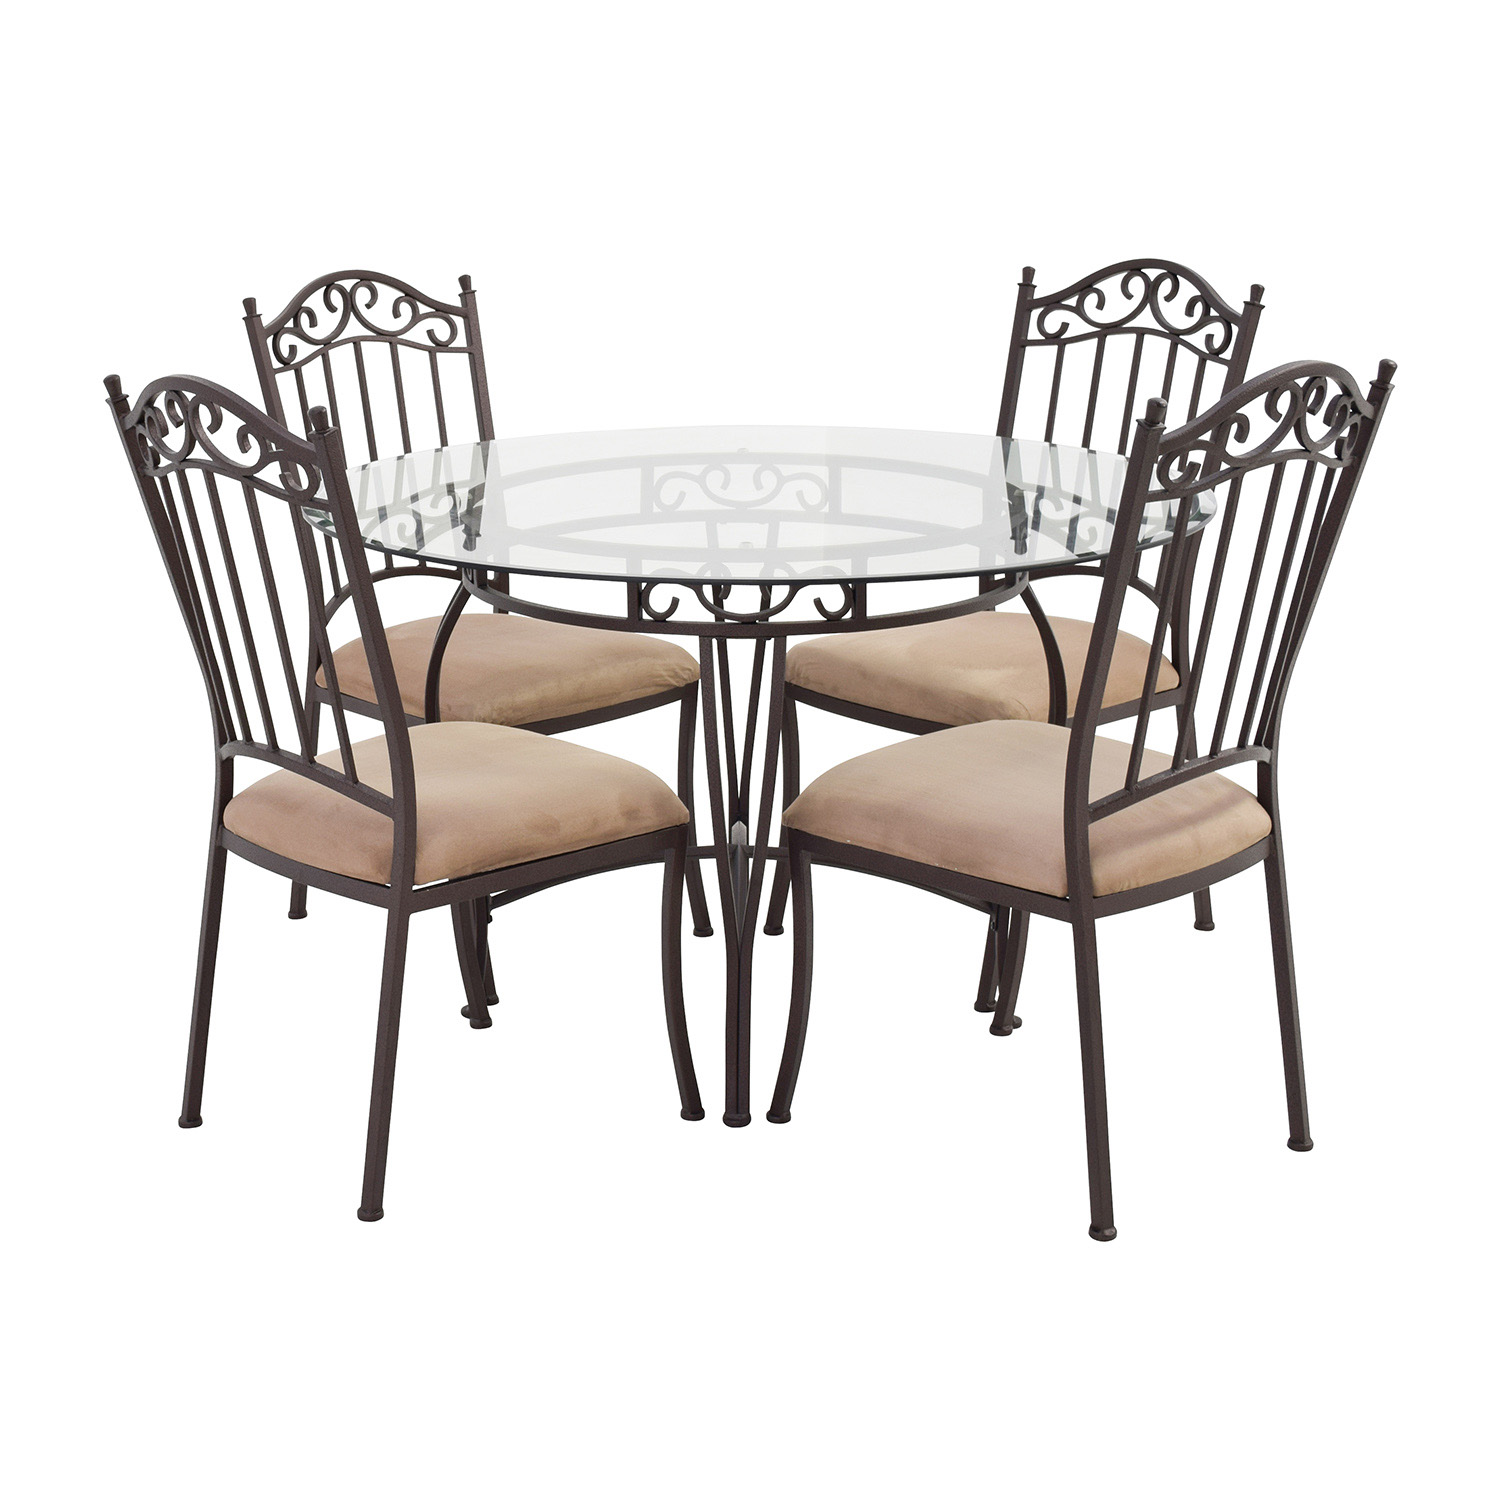 Used Table And Chairs 72 Off Wrought Iron Round Glass Table And Chairs Tables